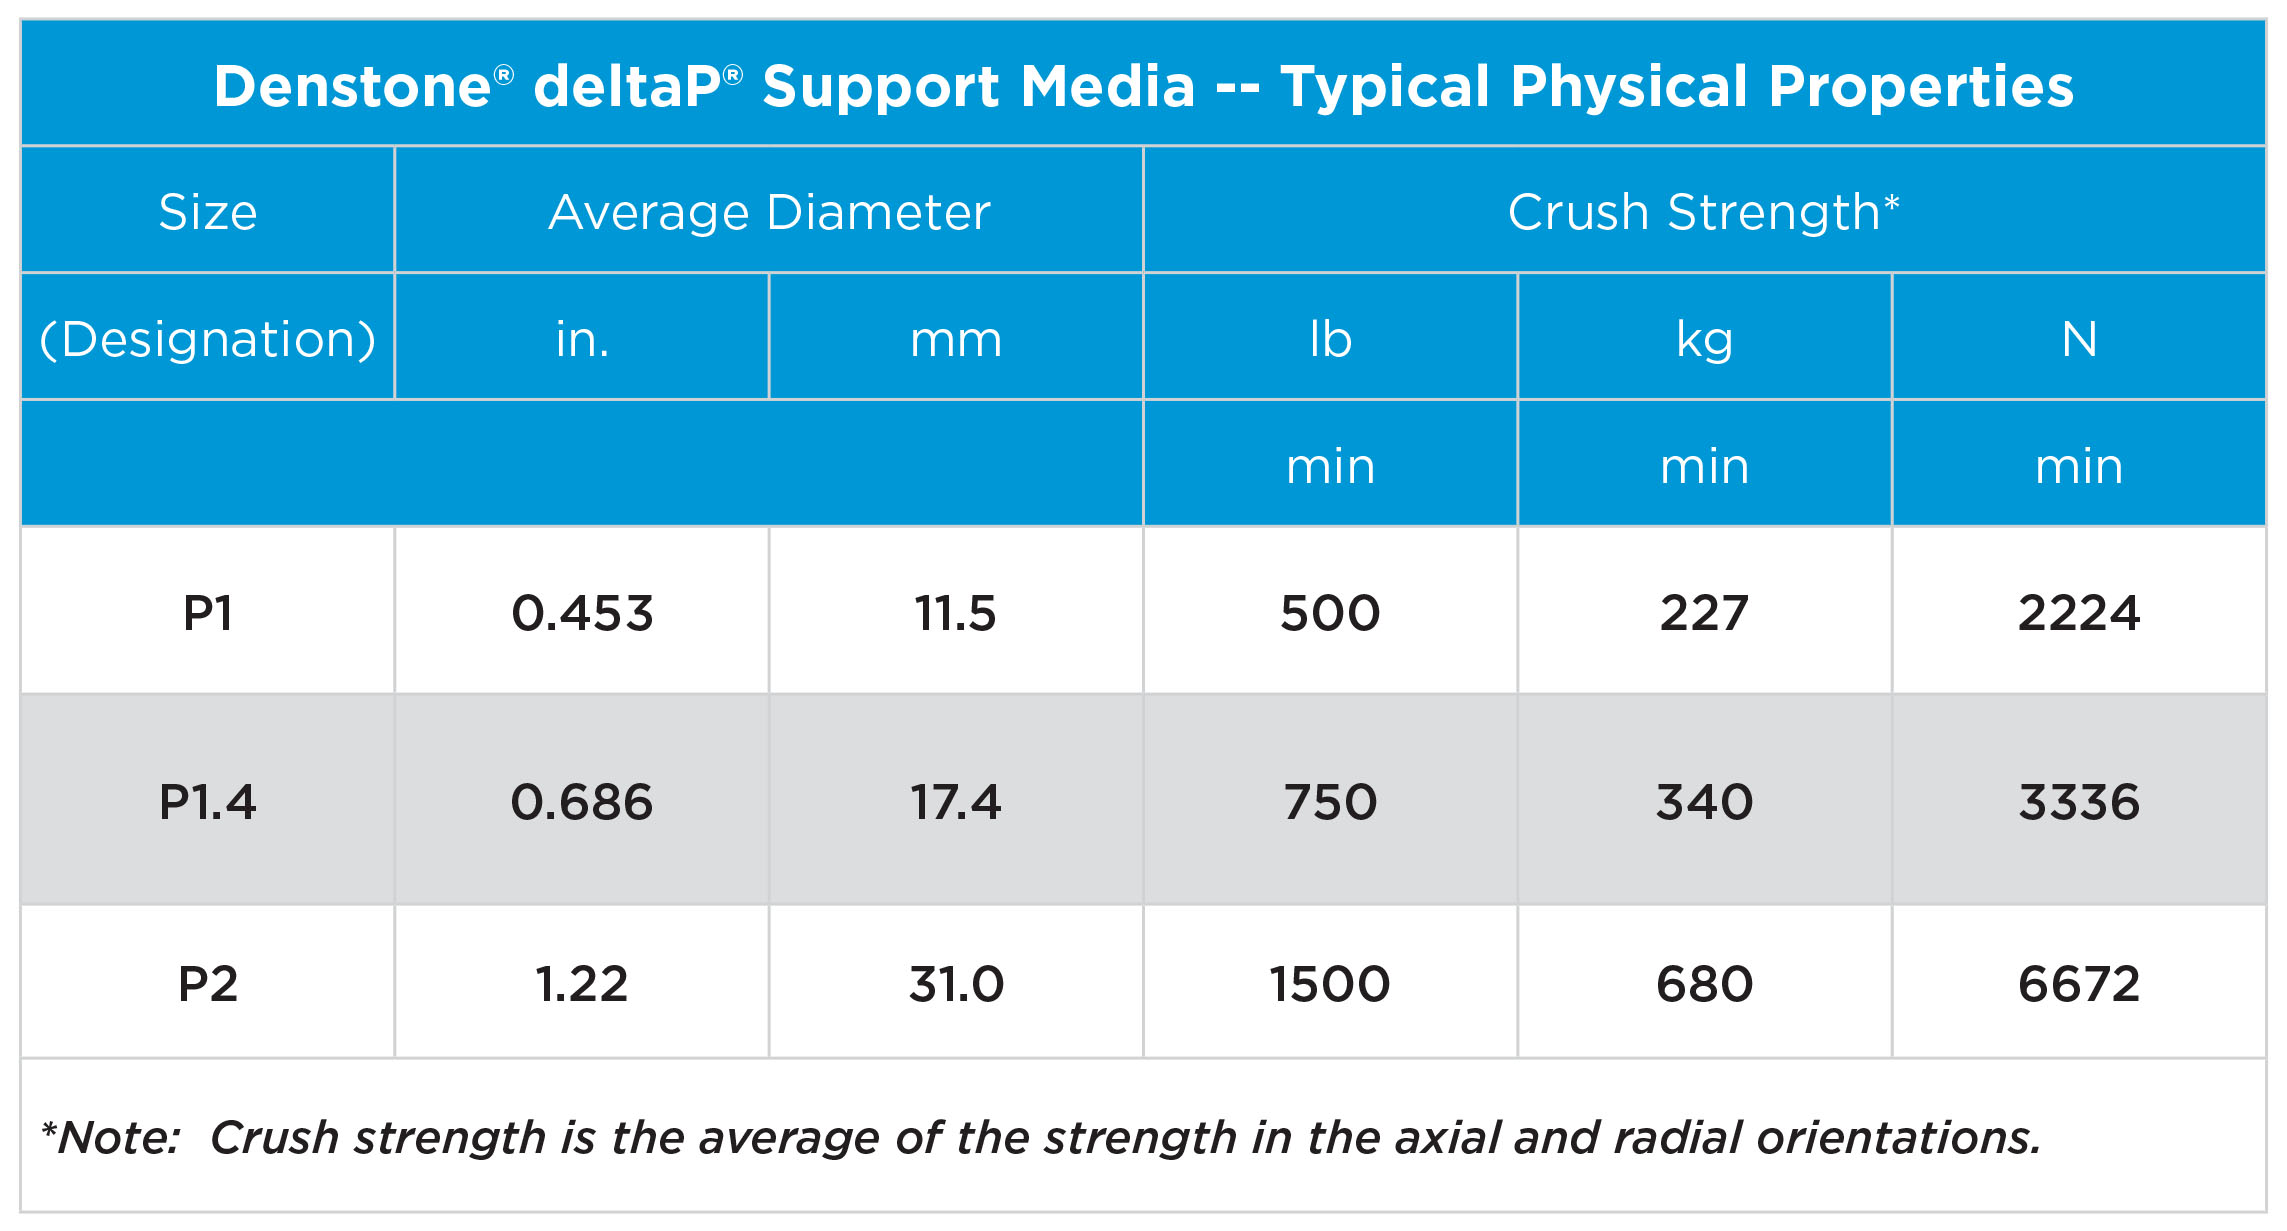 Table 1. The table displays the typical physical properties of Denstone® deltaP® by each size available. Source: Saint-Gobain NorPro